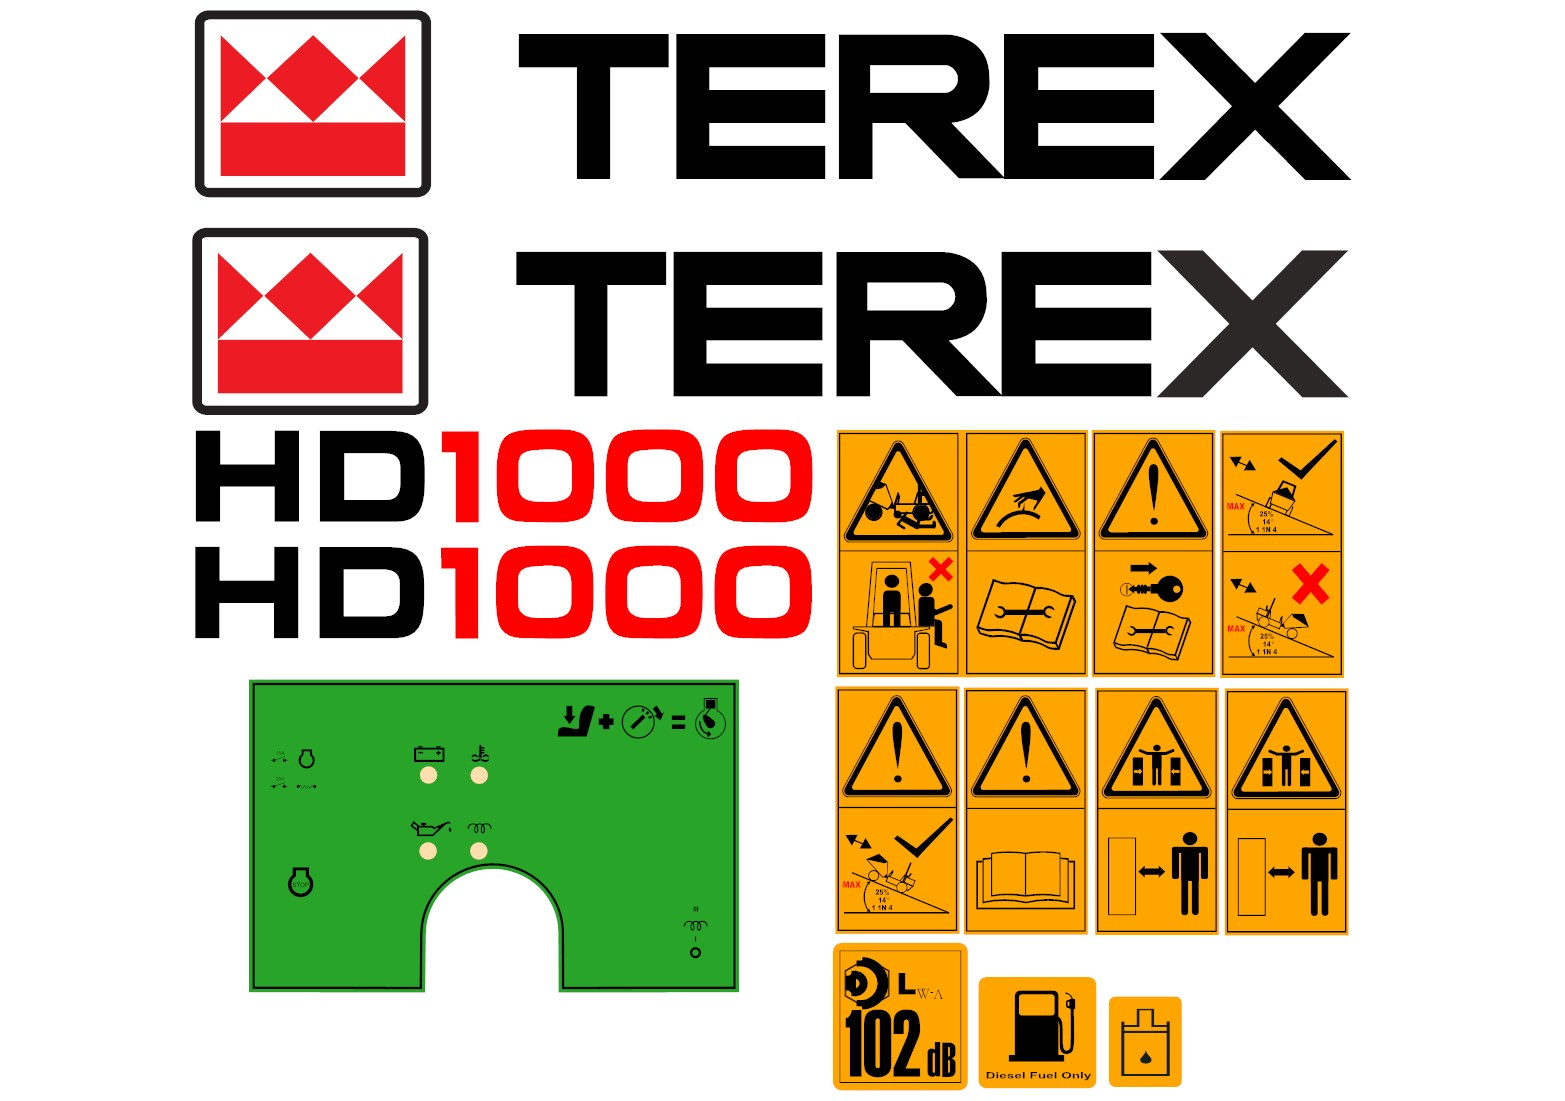 TEREX HD1000 terex hd1000 dumper decal set amc machinery decals terex hd1000 wiring diagram at nearapp.co